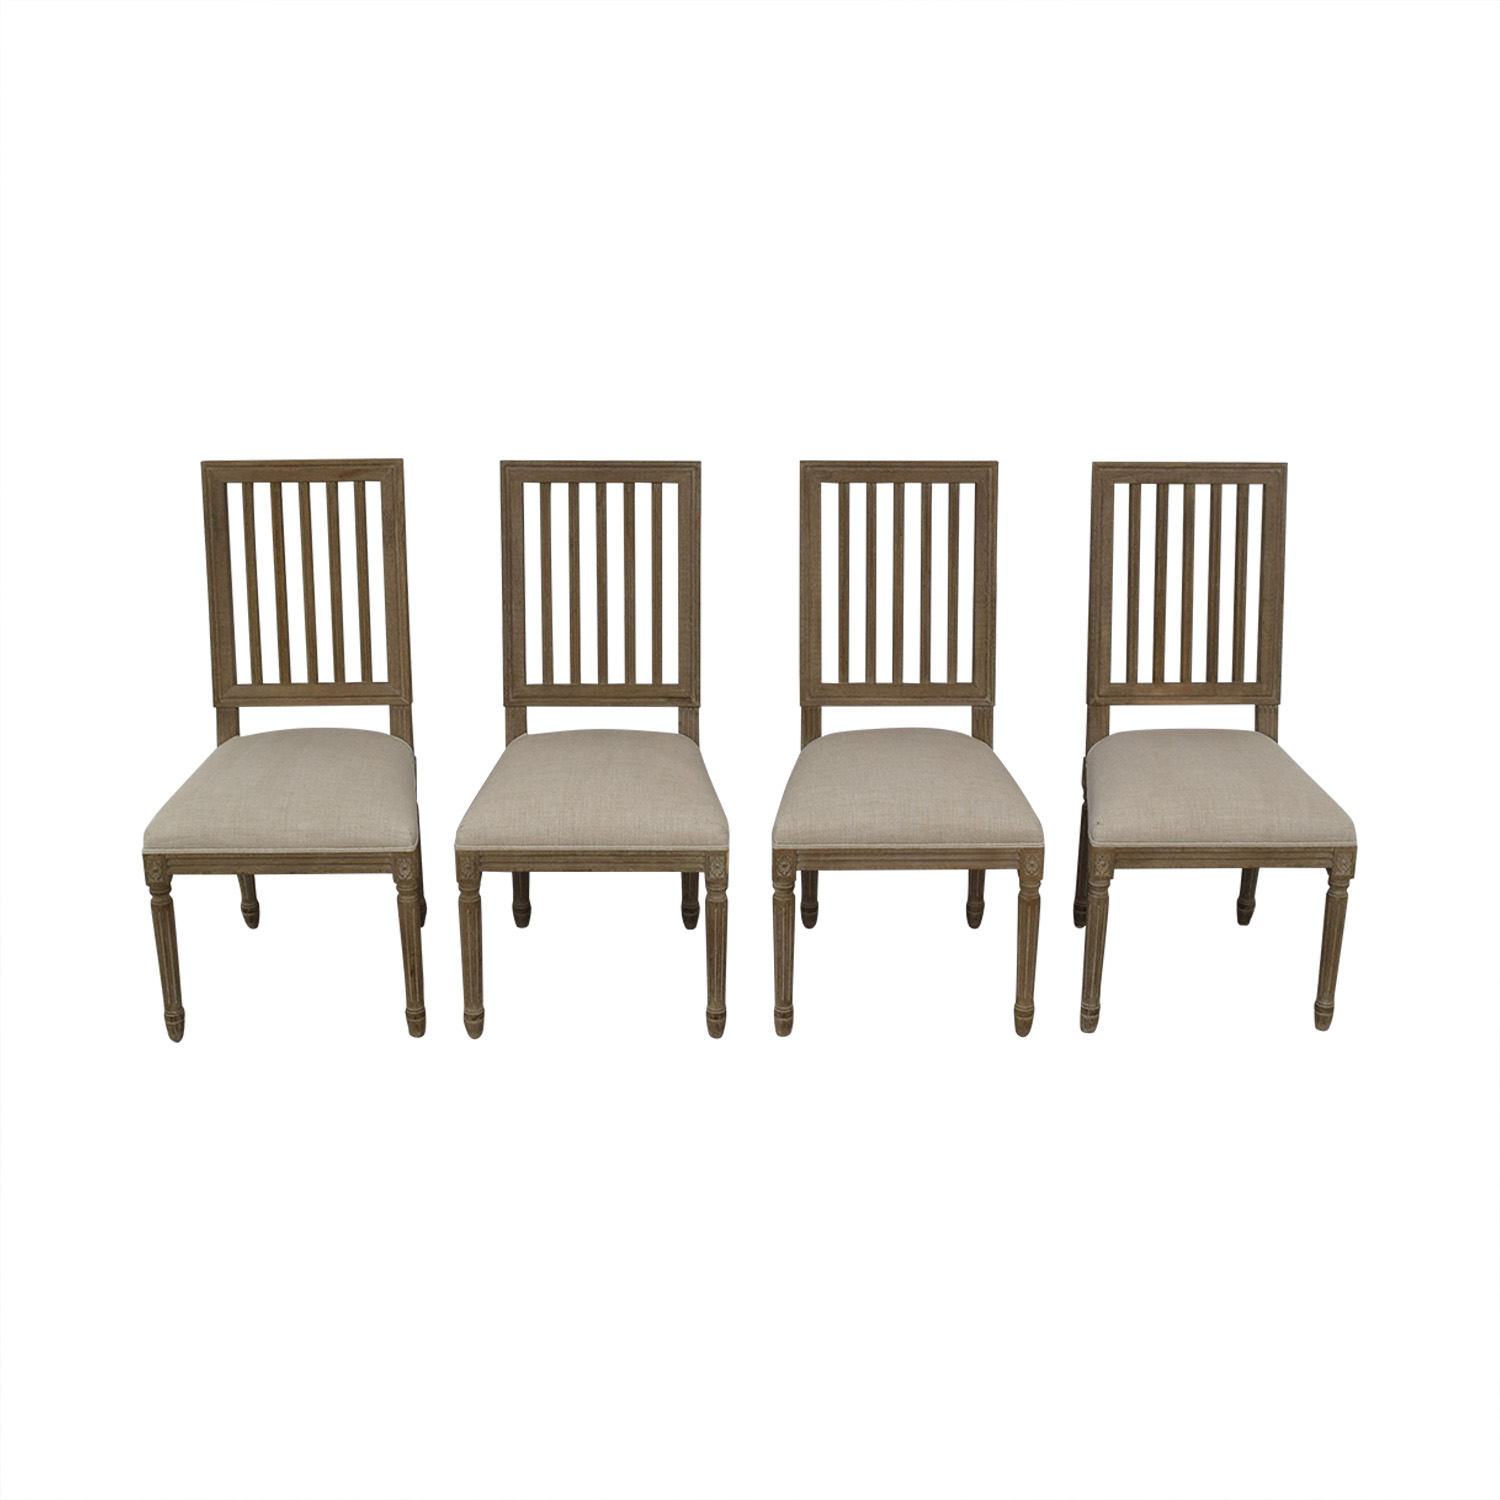 Restoration Hardware Spindle Back Dining Chairs / Chairs